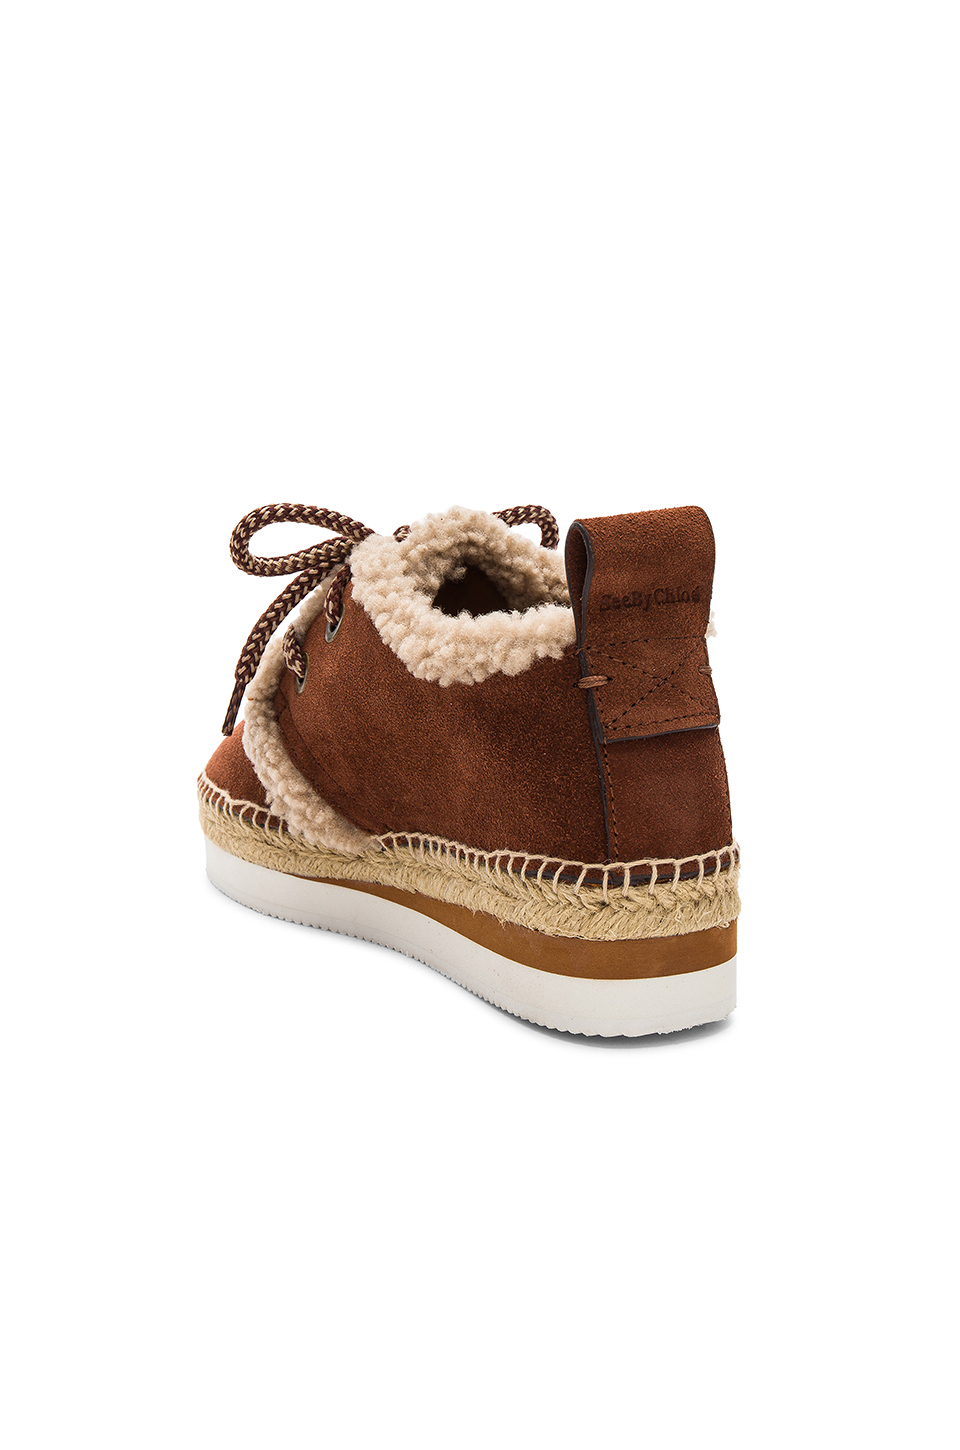 See By Chloe Glyn Espadrille in Tan & White